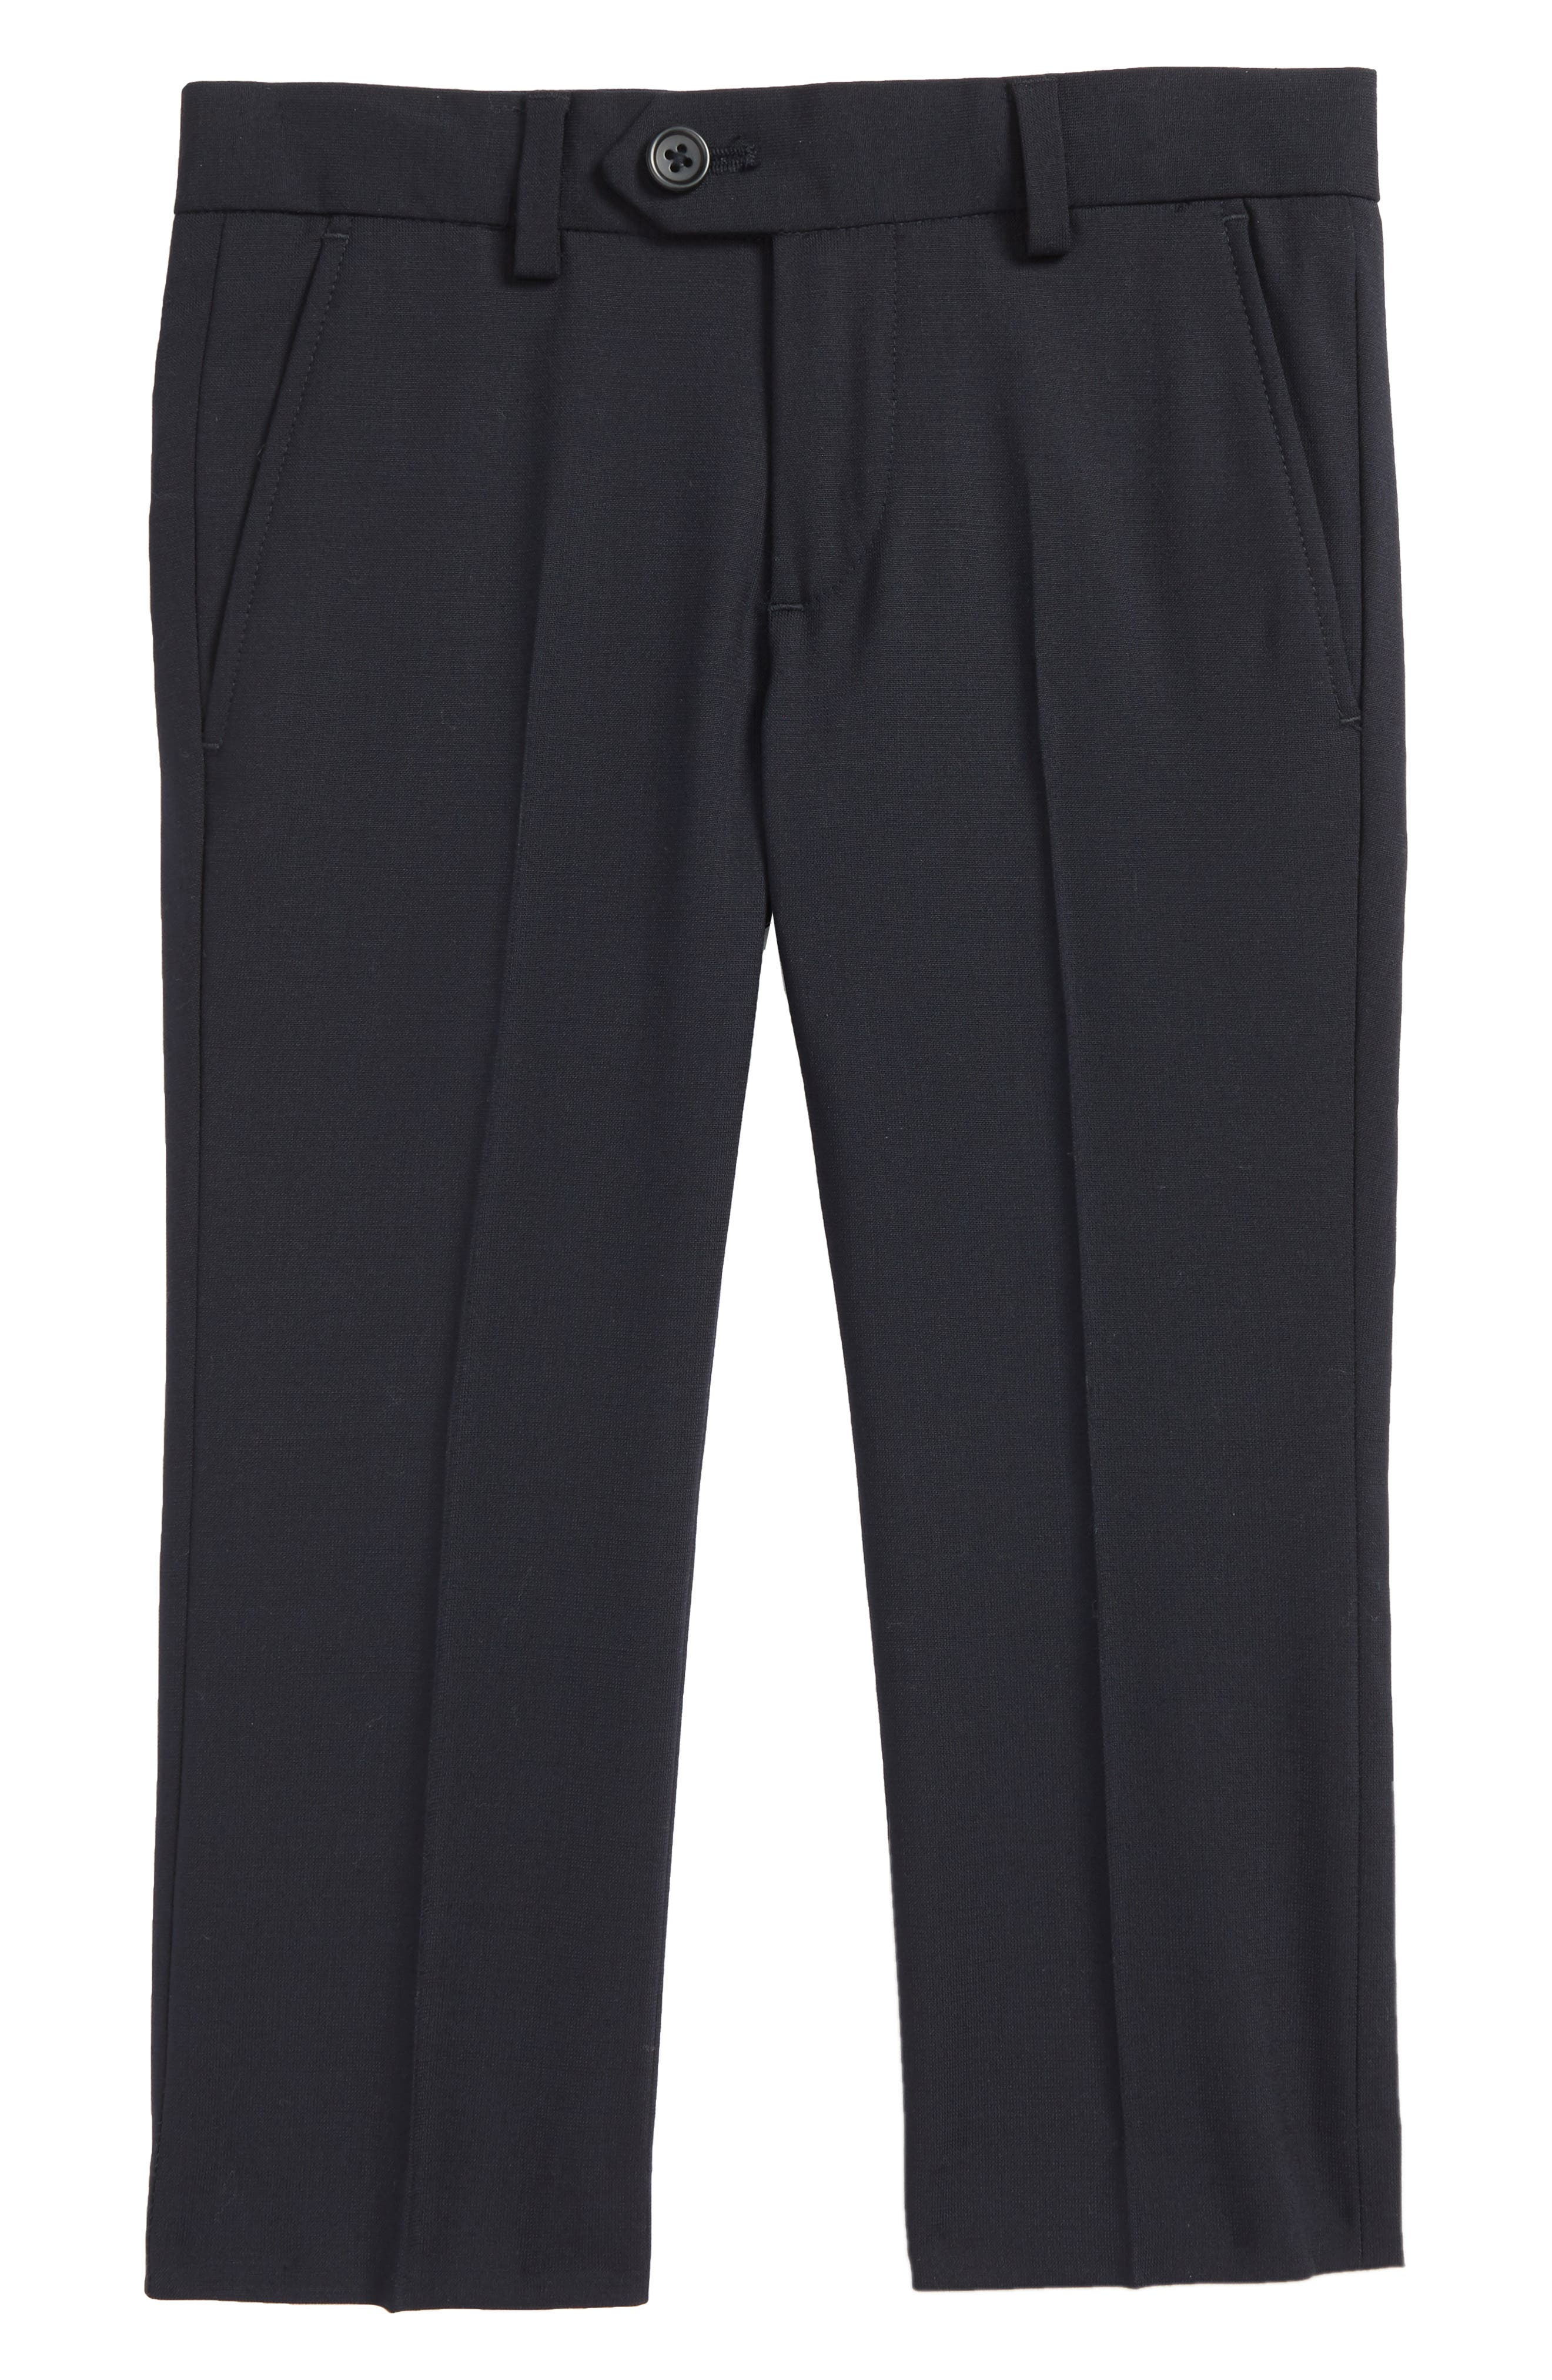 Solid Flat Front Wool Blend Trousers,                             Main thumbnail 1, color,                             BLACK